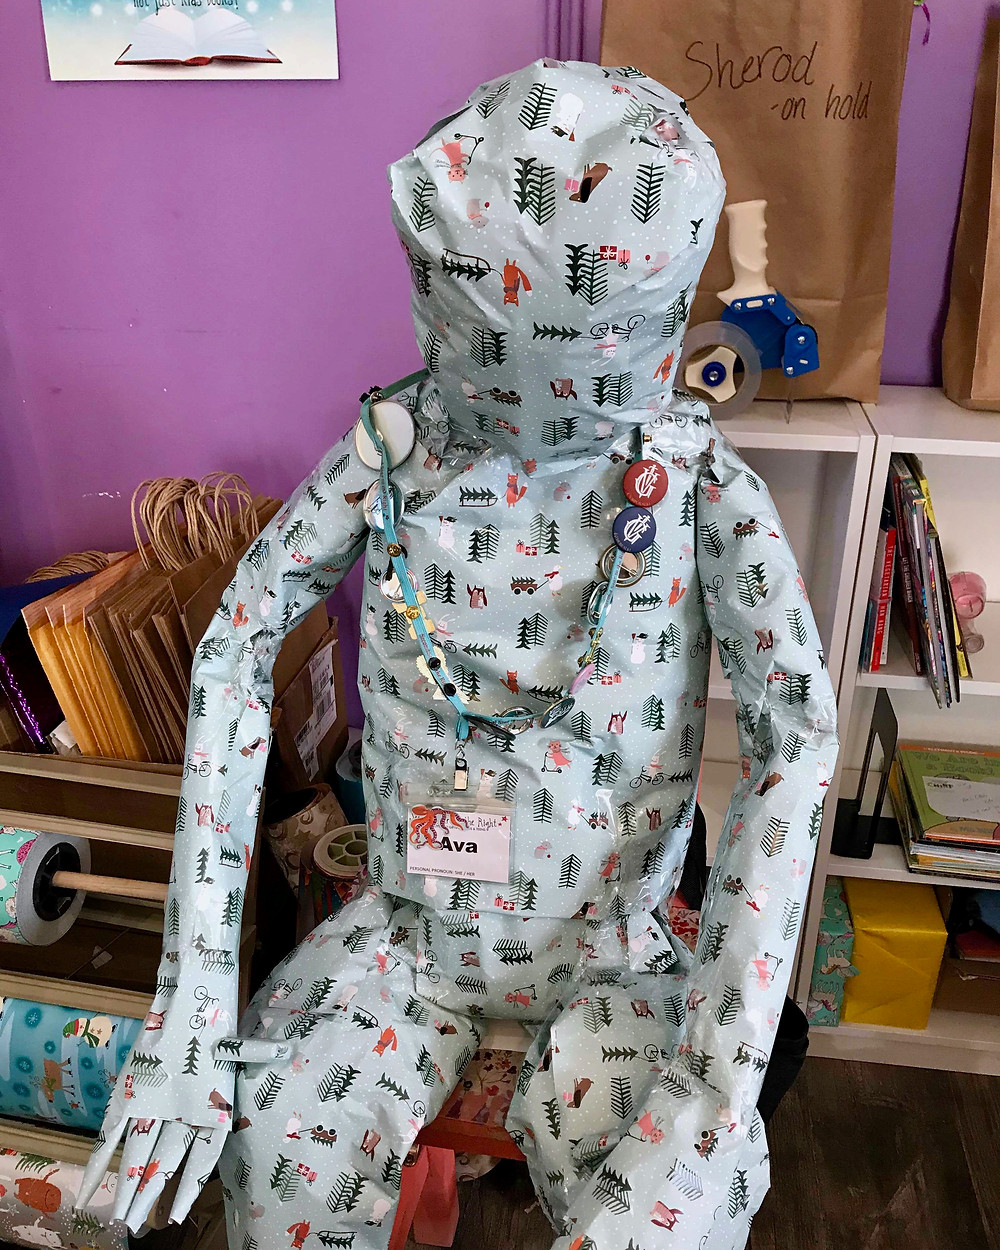 Holiday wrapping paper shaped to look like human sitting on stool in front of other wrapping materials and shopping bag. Lanyard with buttons is looped around its neck with nametag reading 'Ava.'